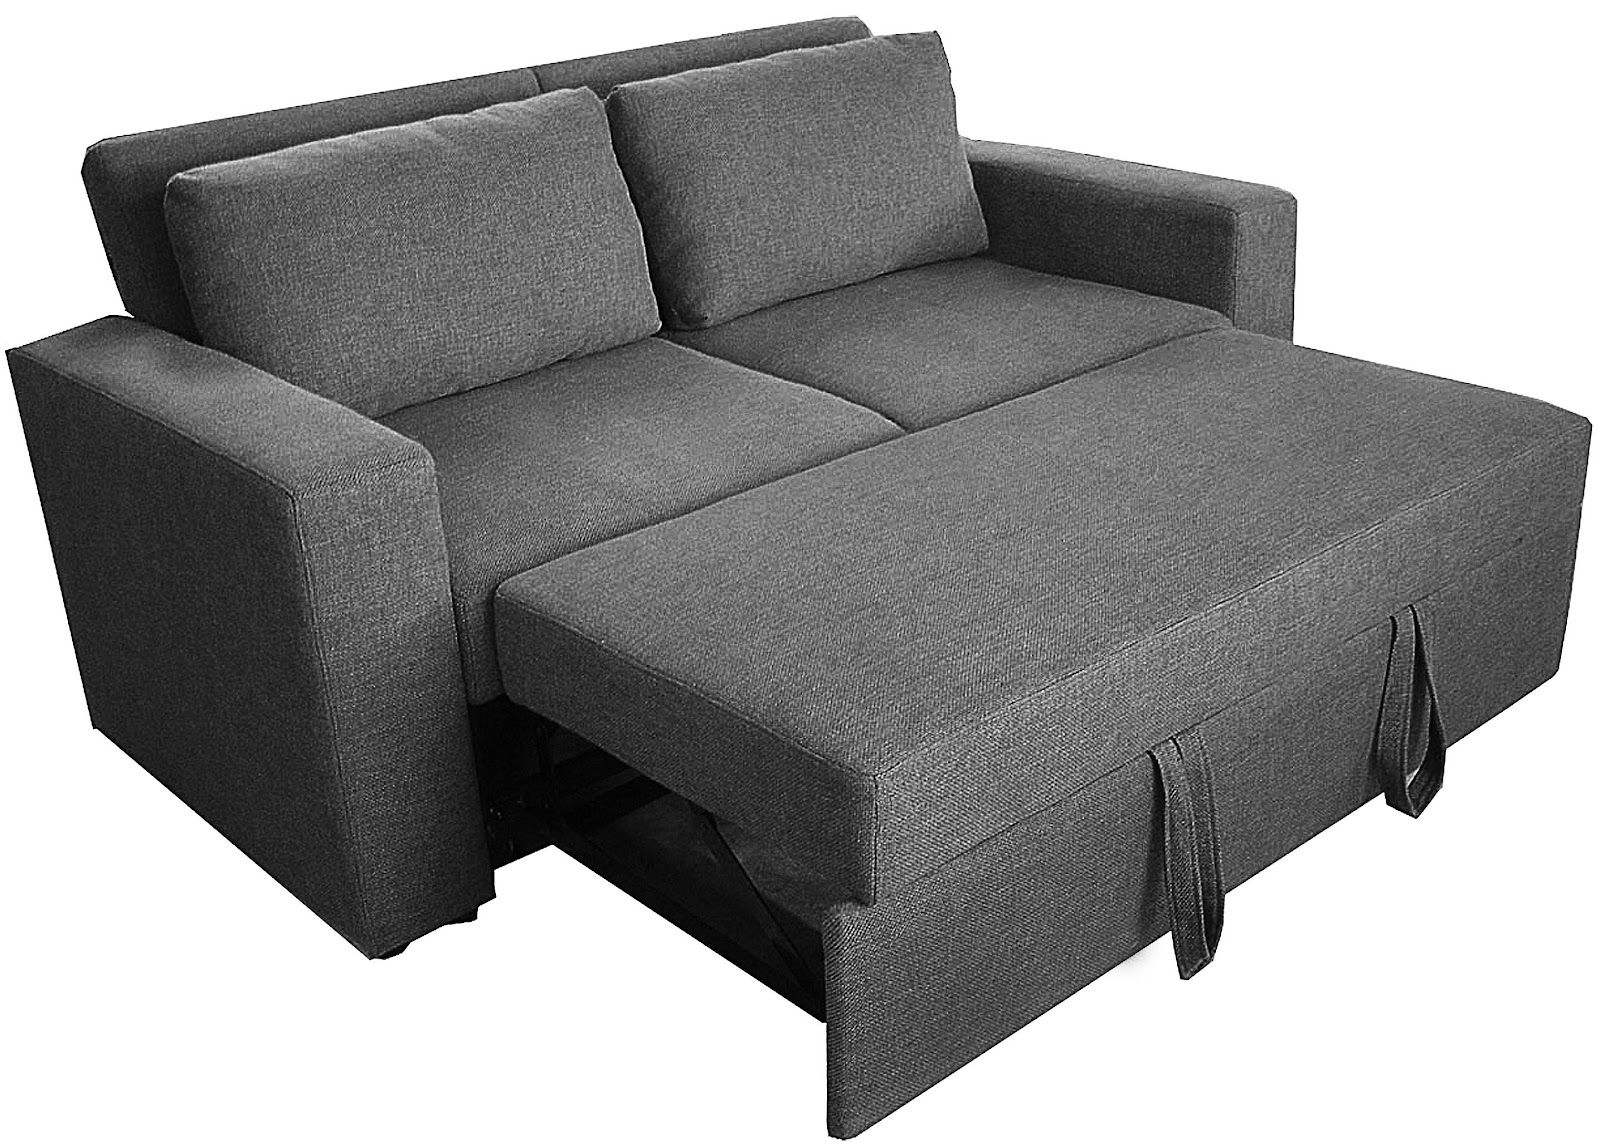 Perfect Love Seat Sofa Bed In 2020 Small Sofa Bed Solsta Sofa Bed Ikea Sofa Bed